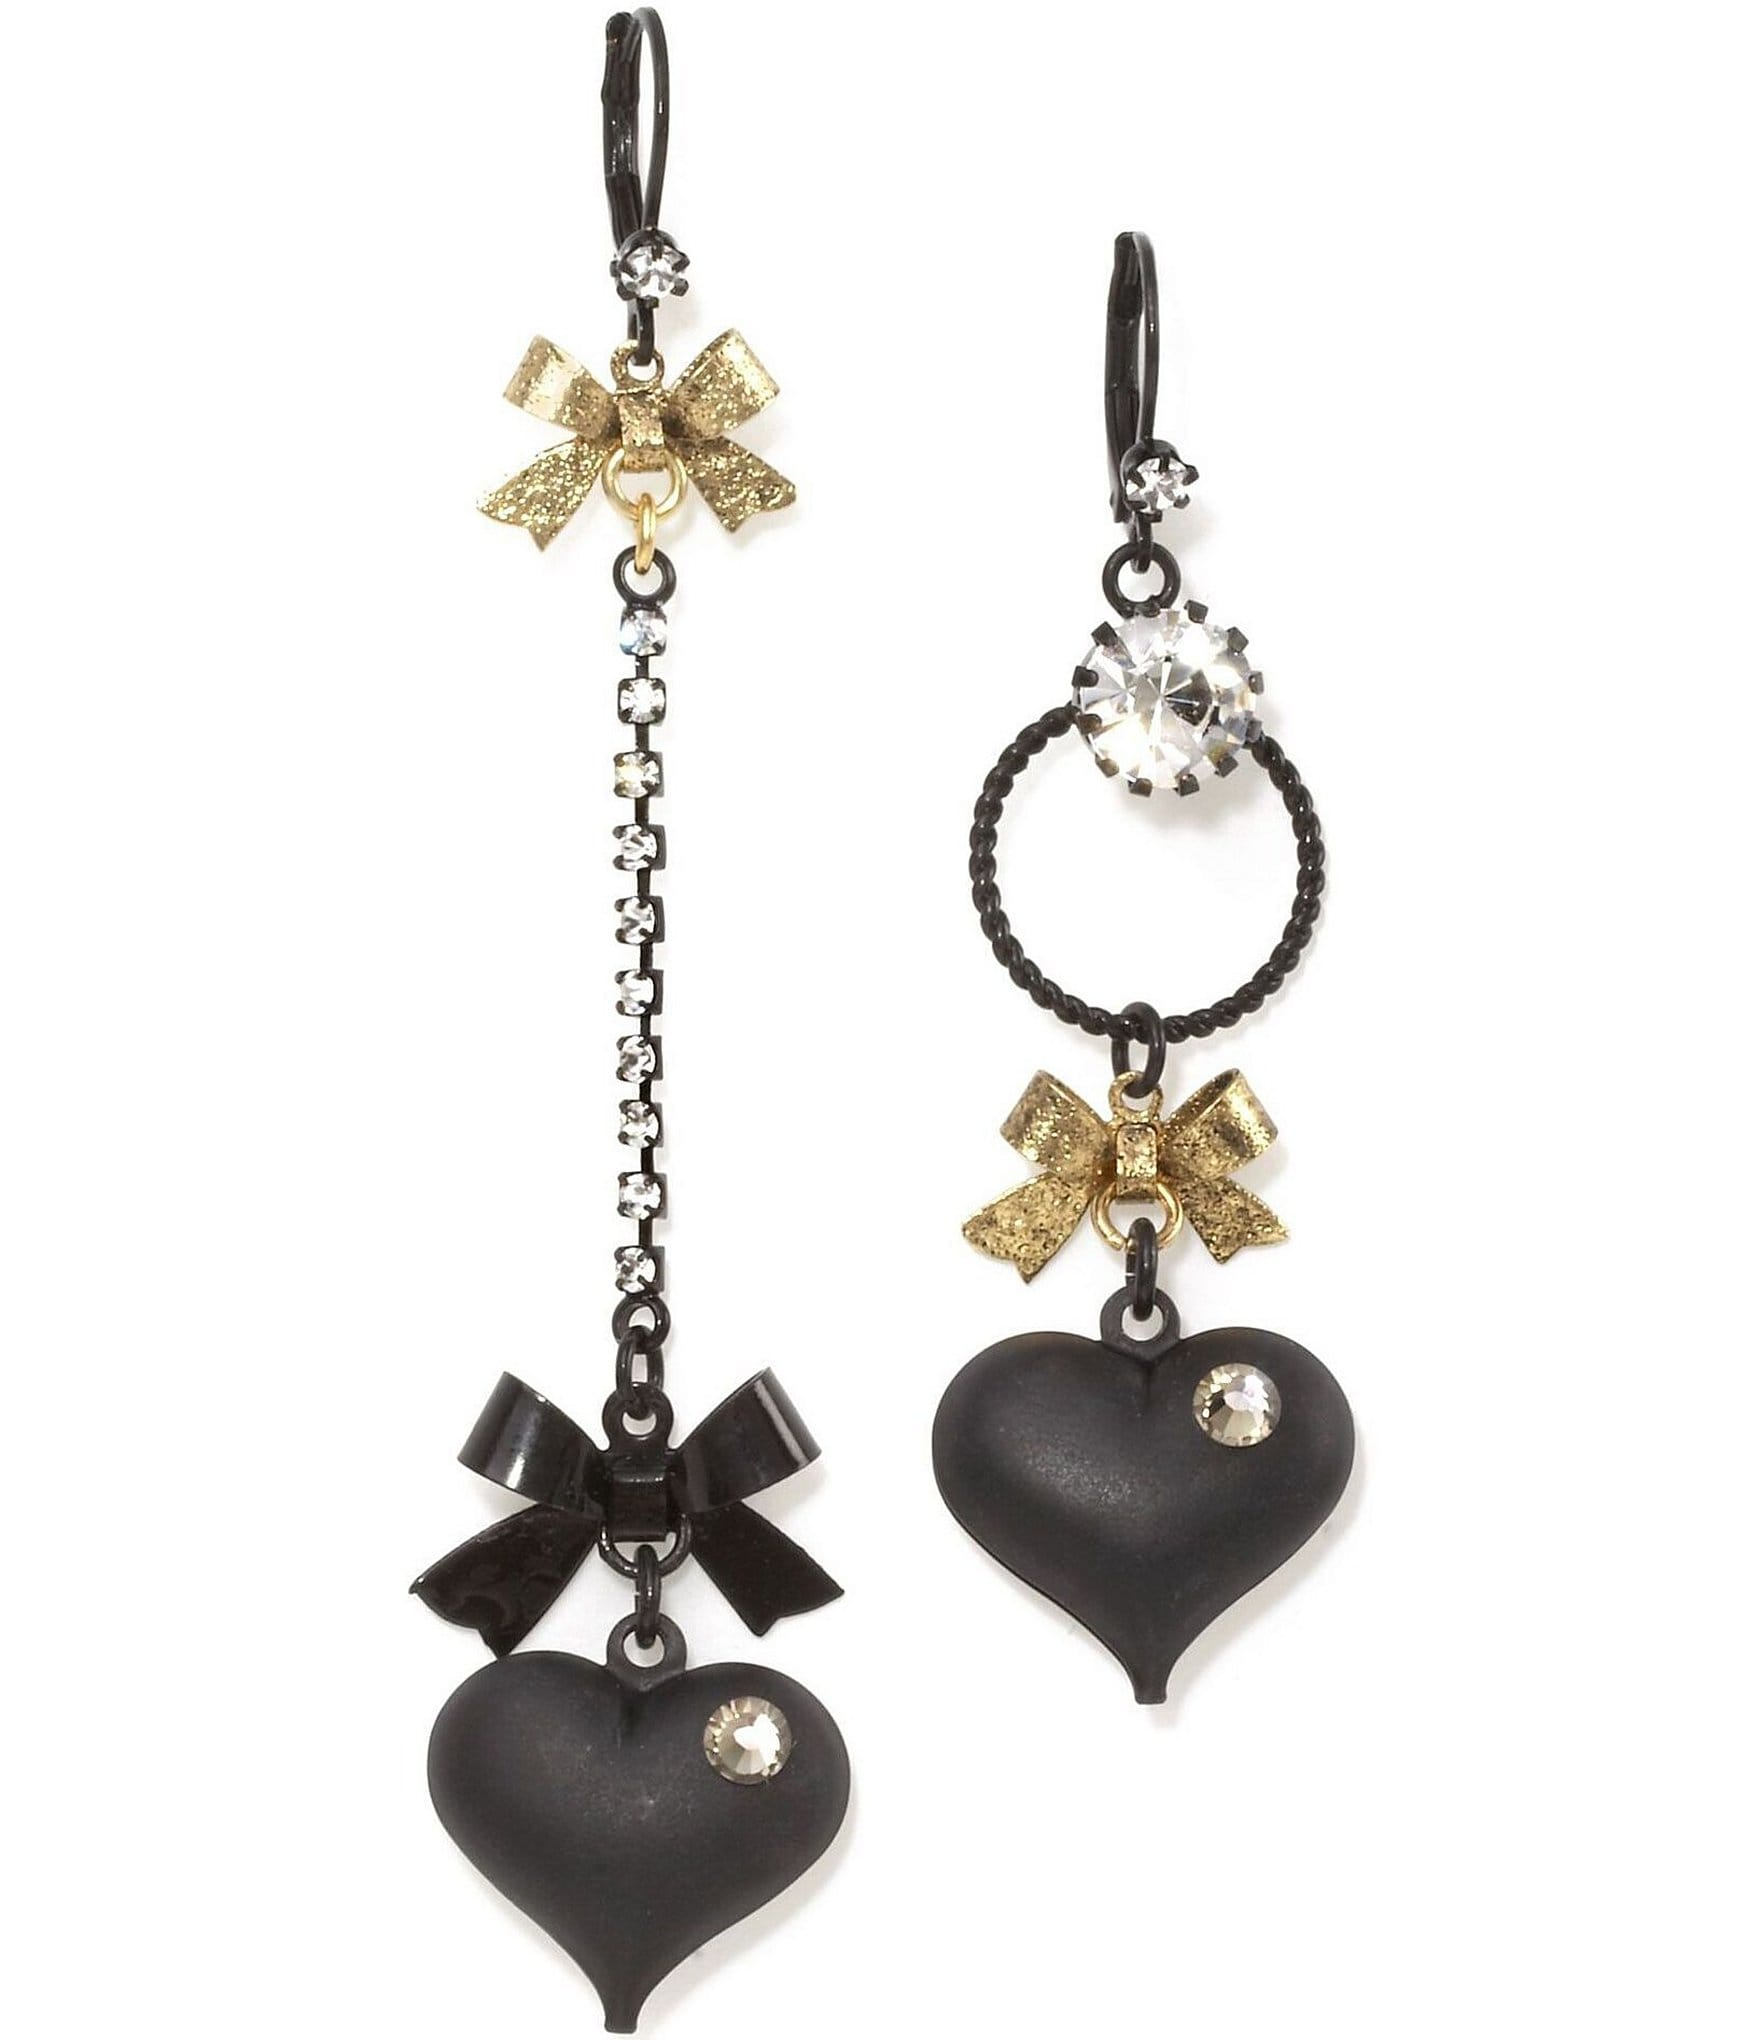 Betsey Johnson Mismatched Bow and Crystal Heart Earrings ...